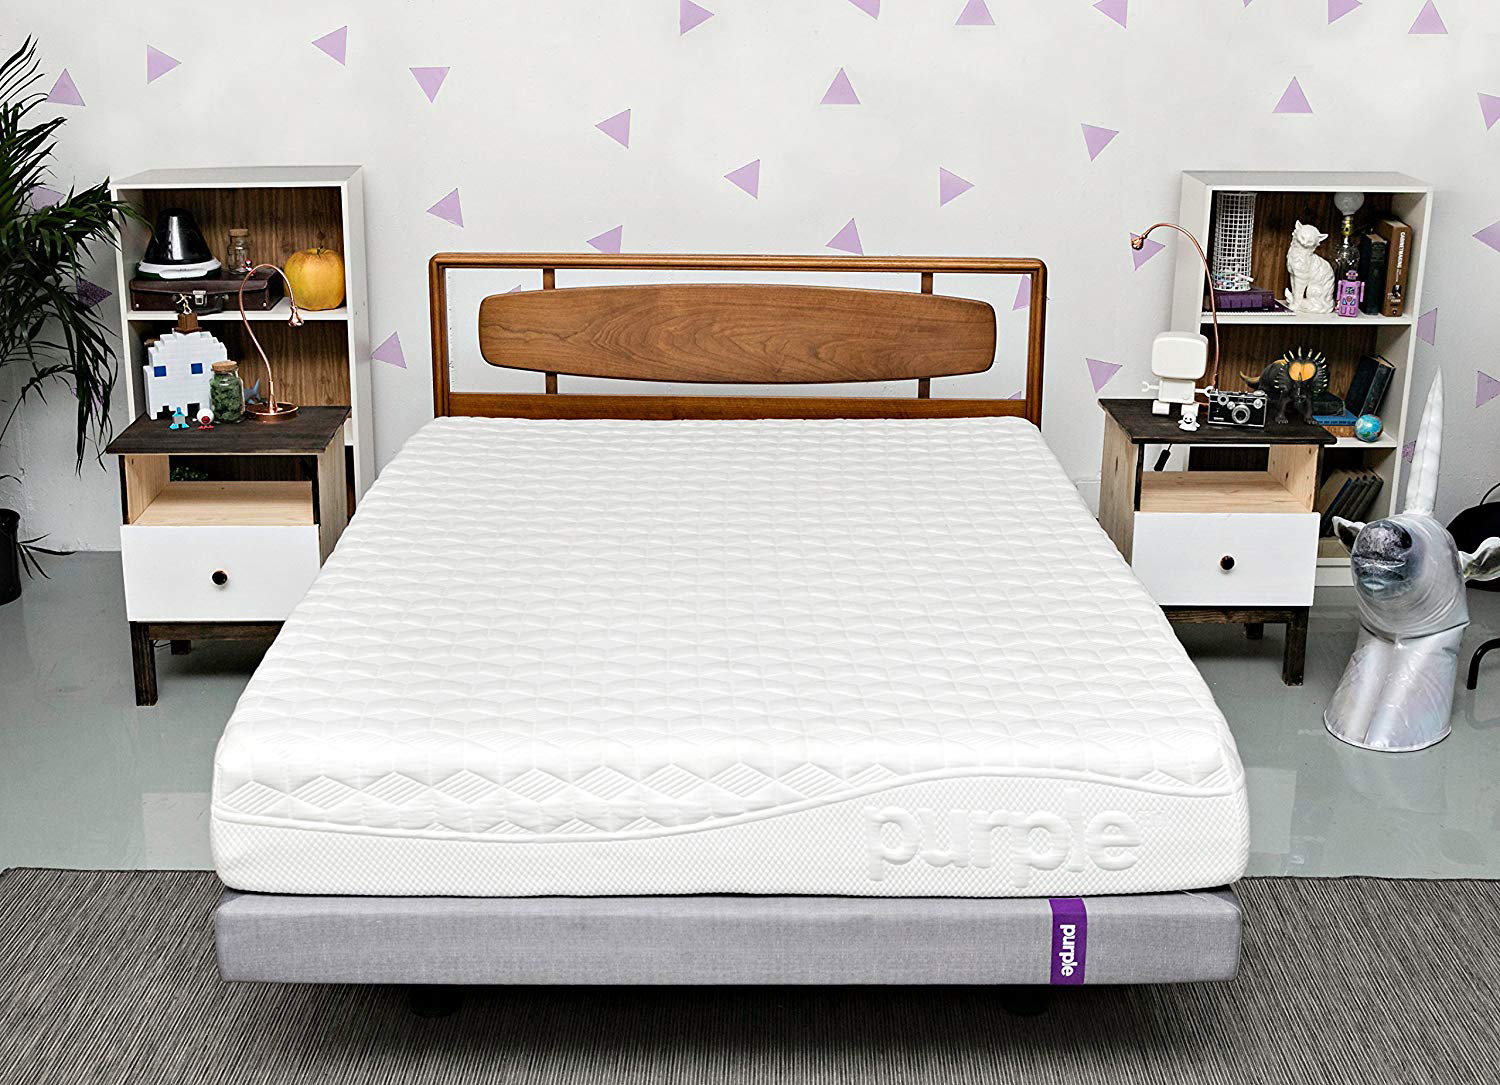 White patterned memory foam mattress